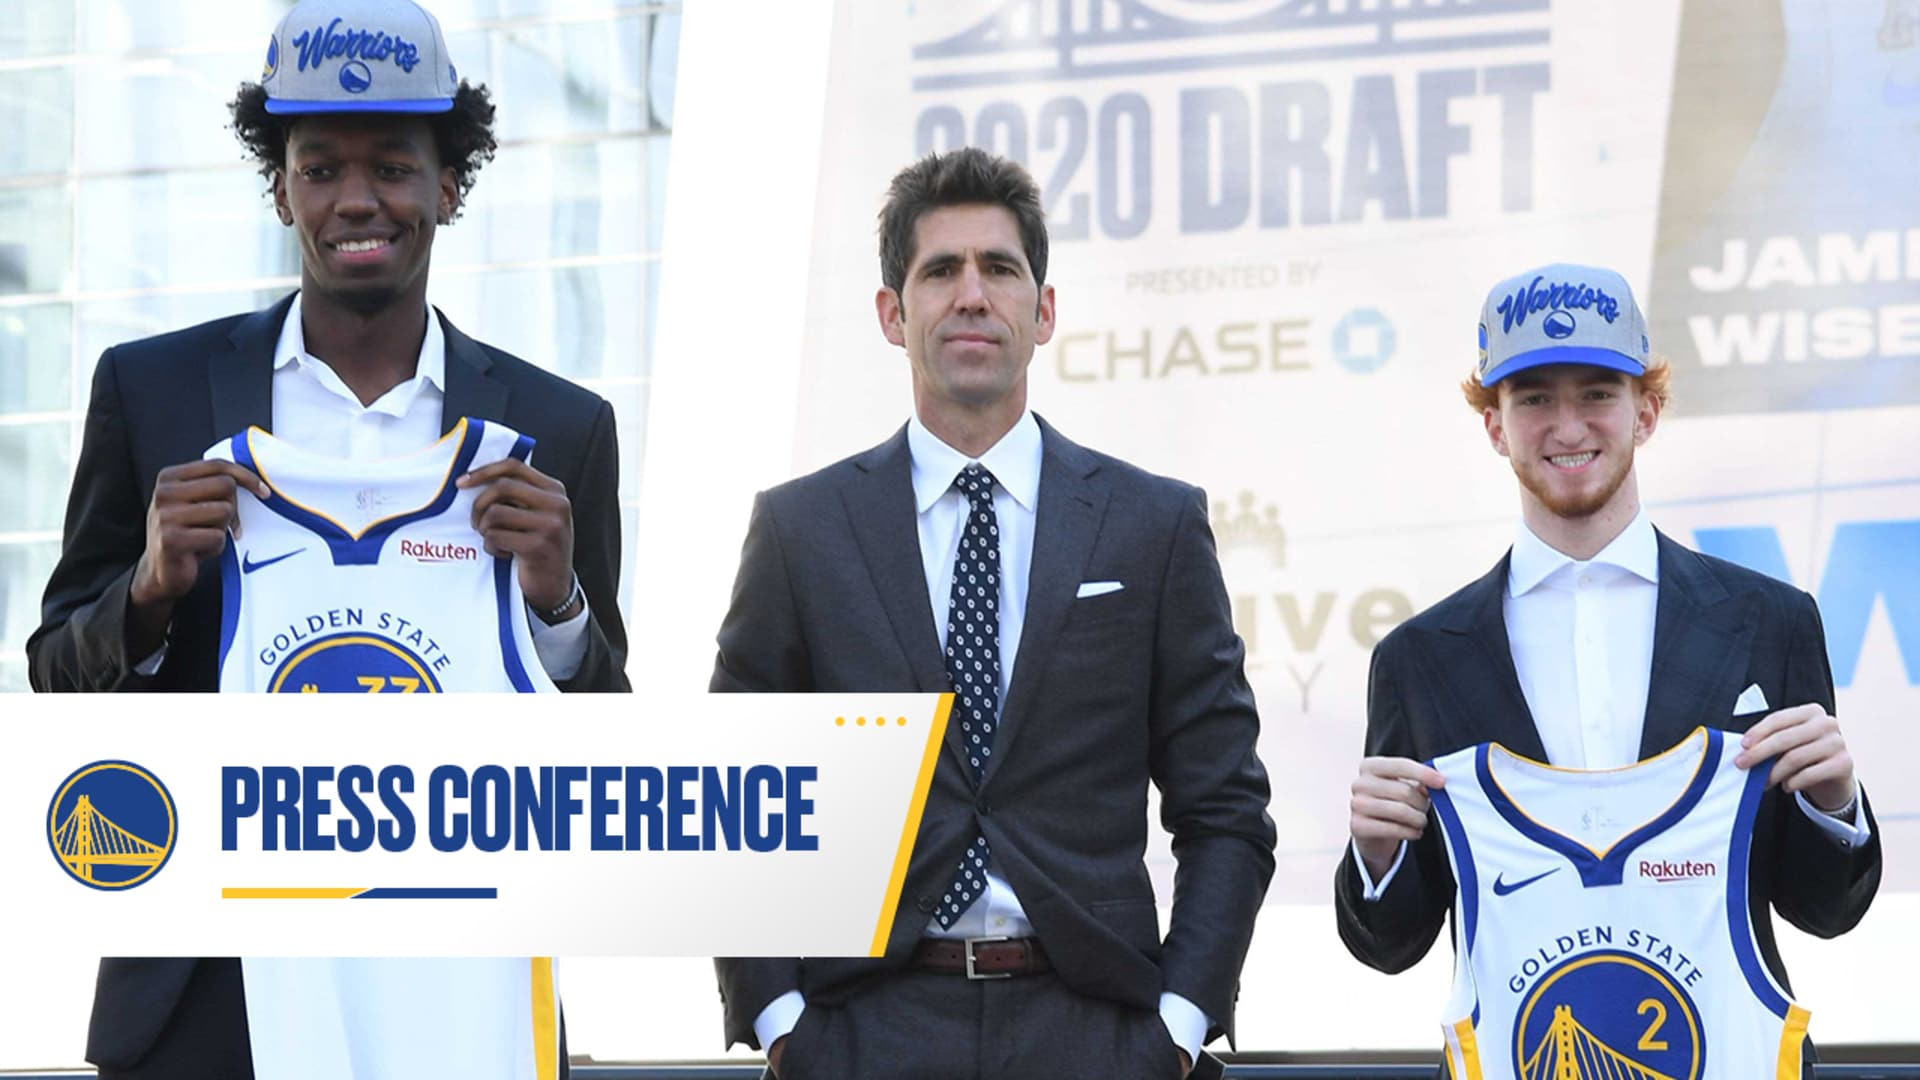 Warriors Introduce James Wiseman and Nico Mannion